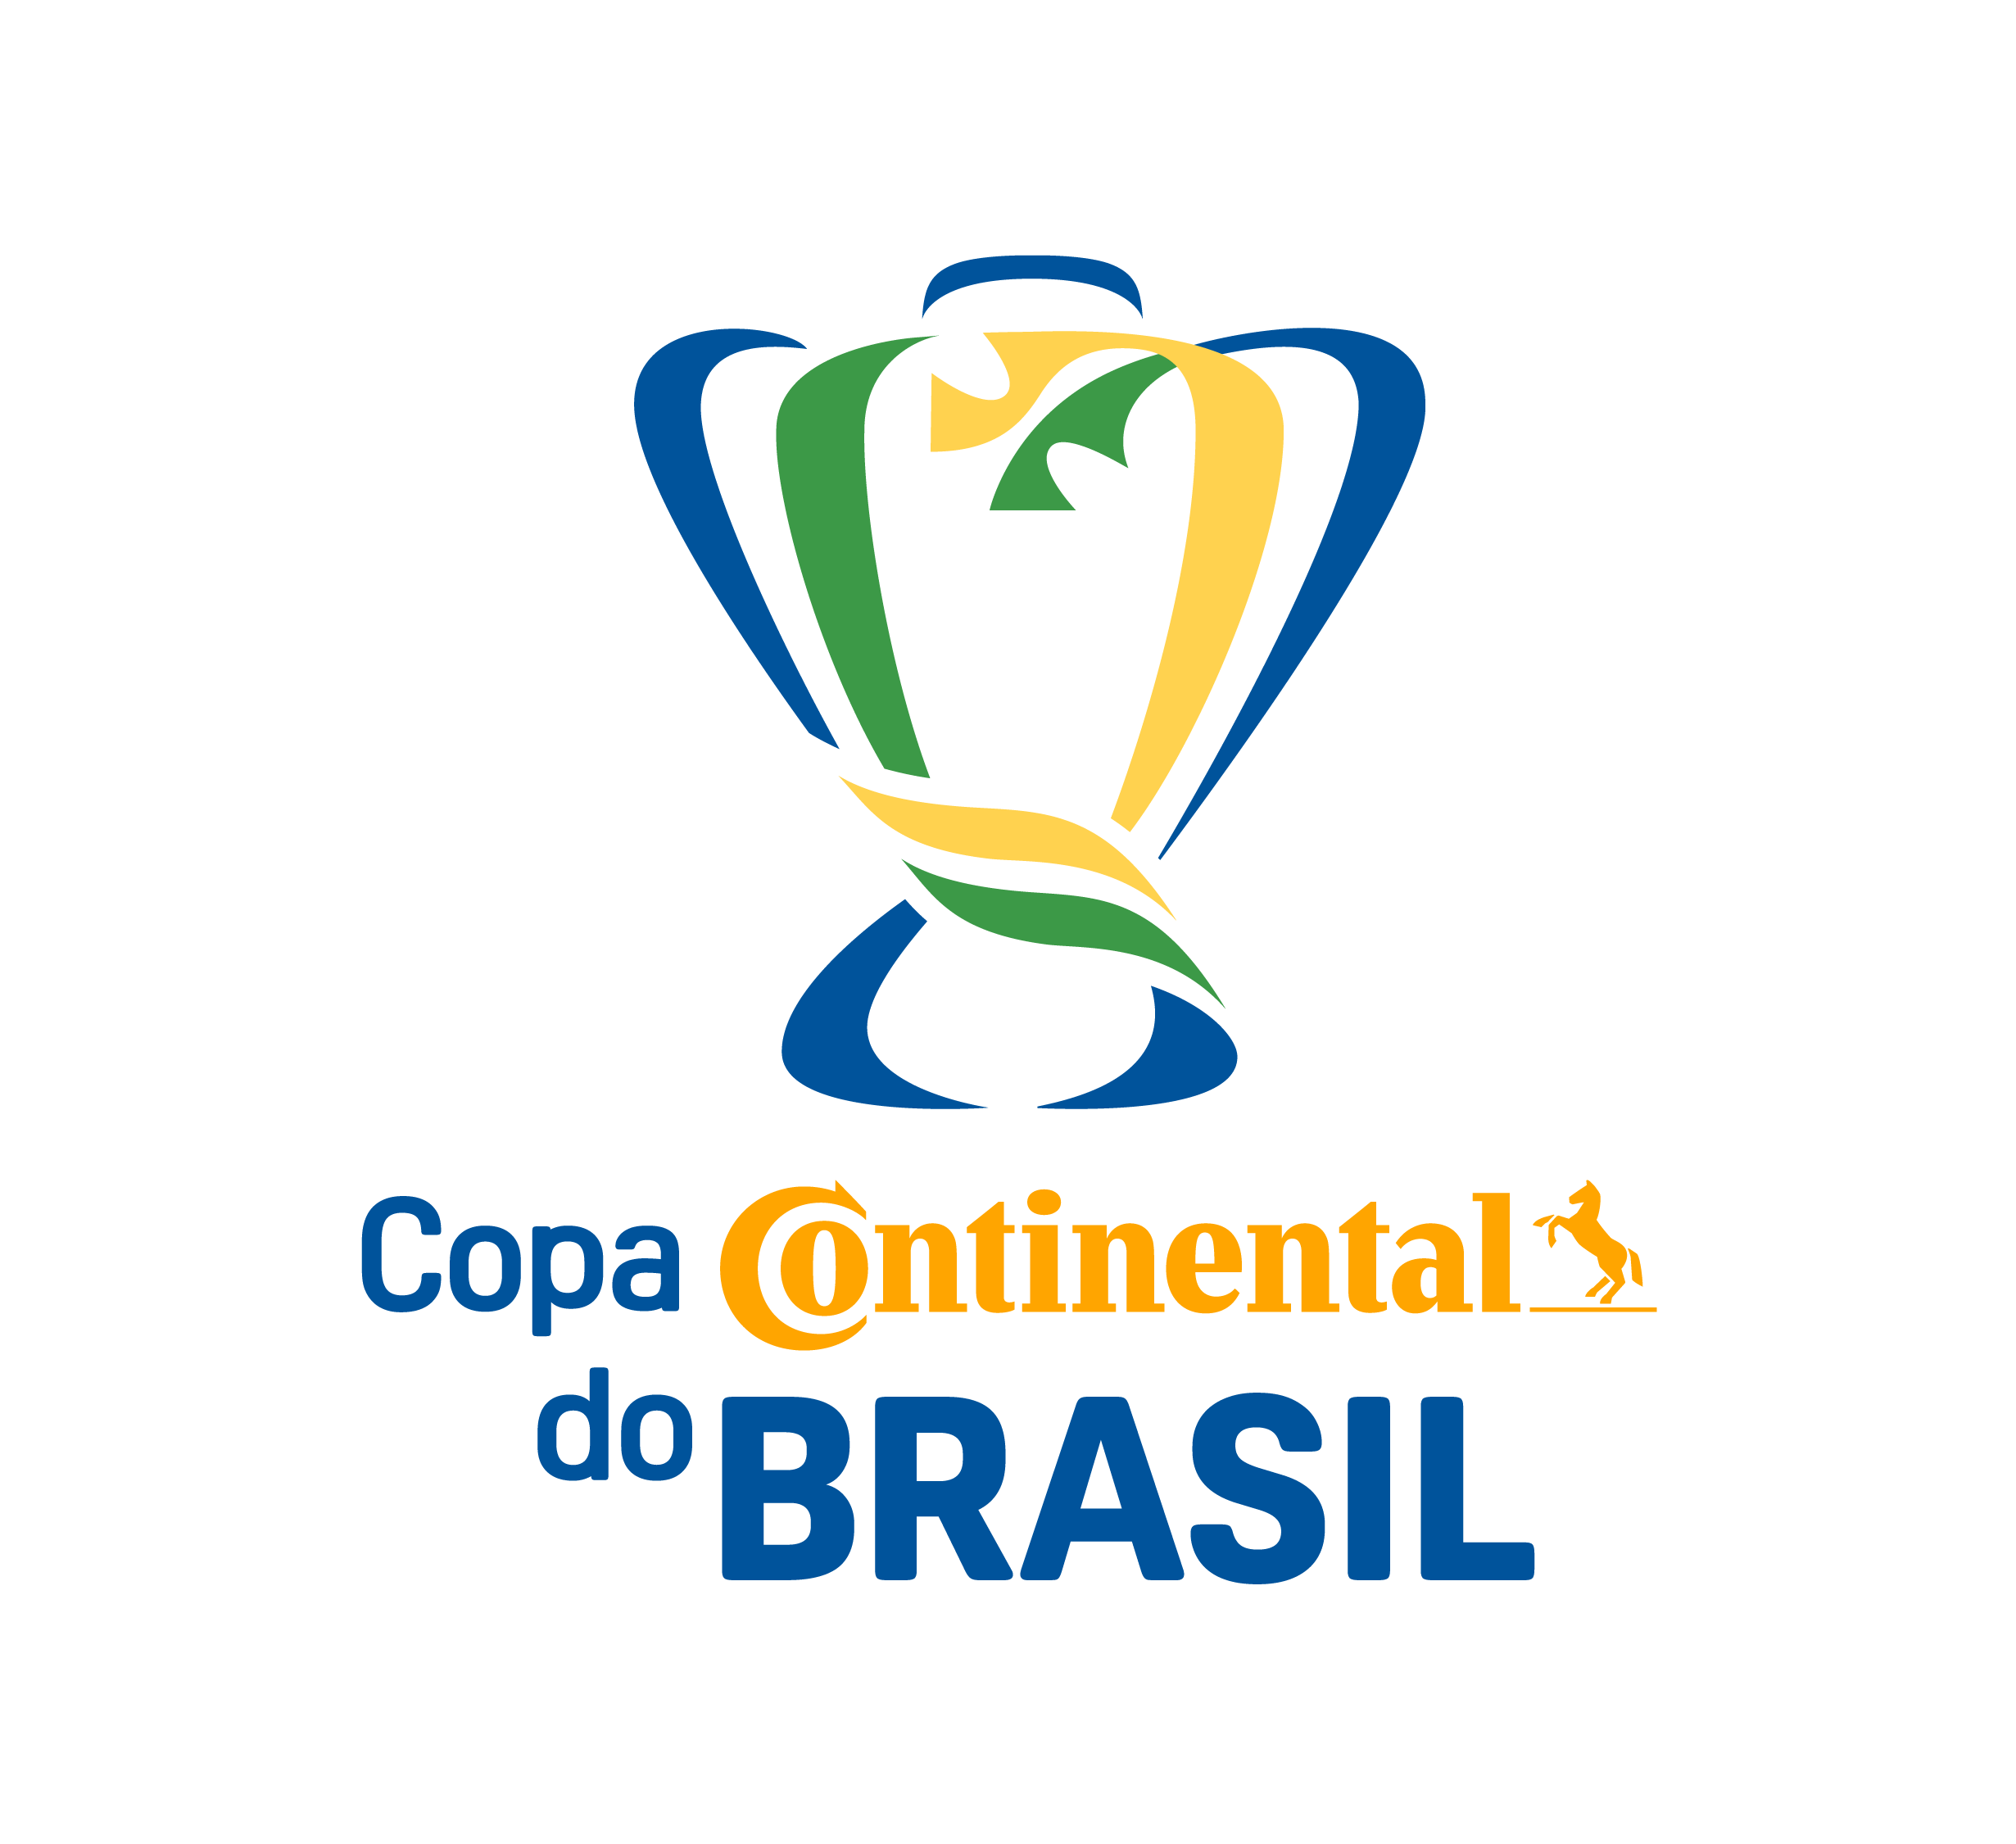 Copa Do Brasil Colorado GIF by Copa Continental do Brasil - Find & Share on  GIPHY